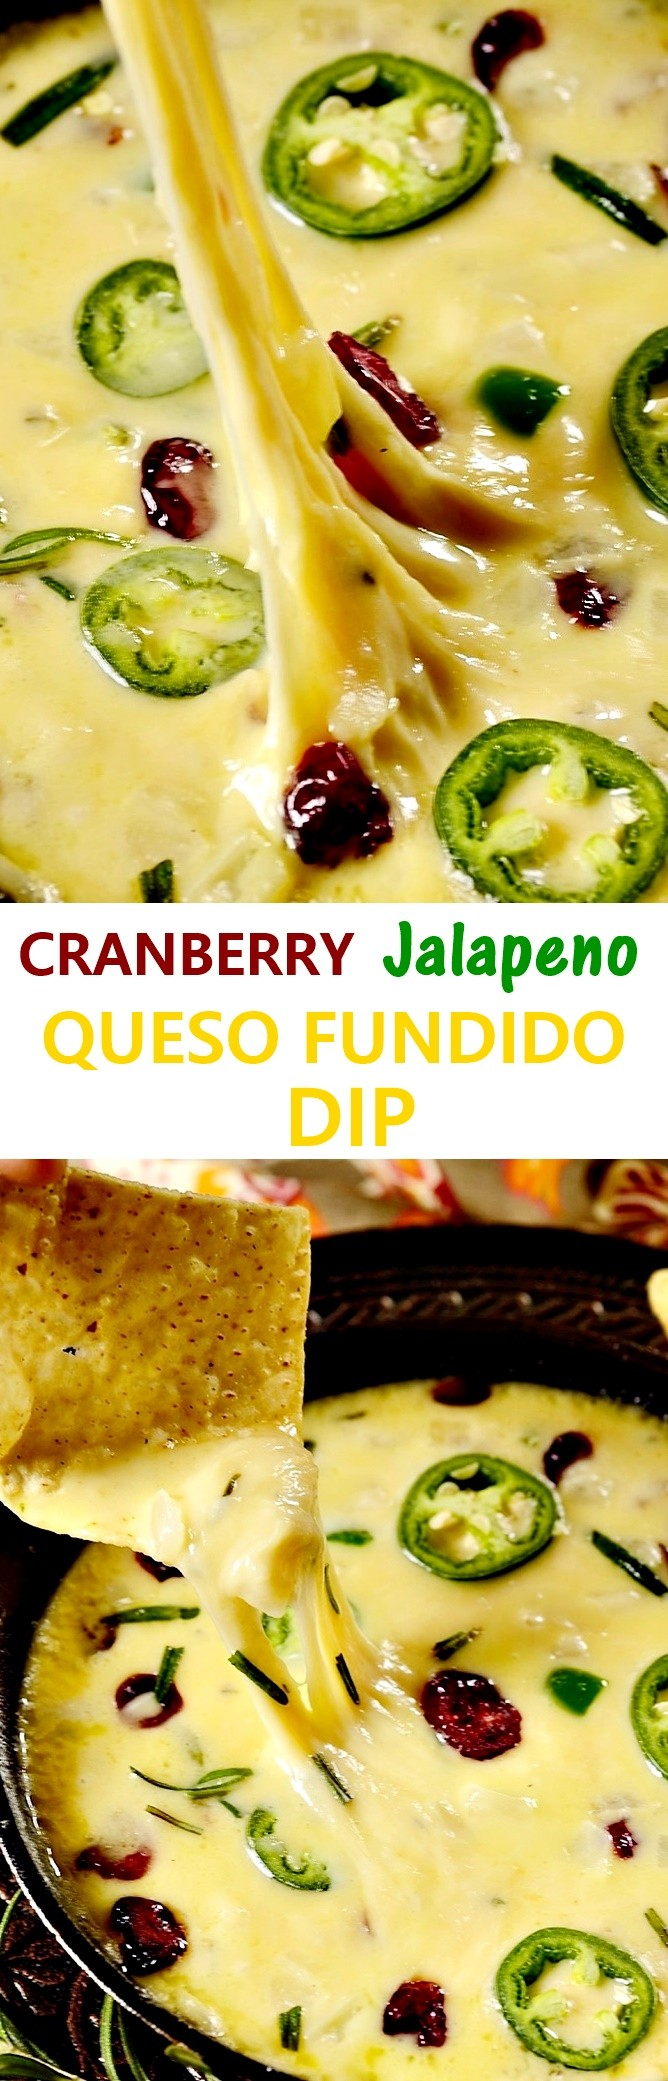 cranberry-jalapeno-queso-fundido-dip-for-pinterest